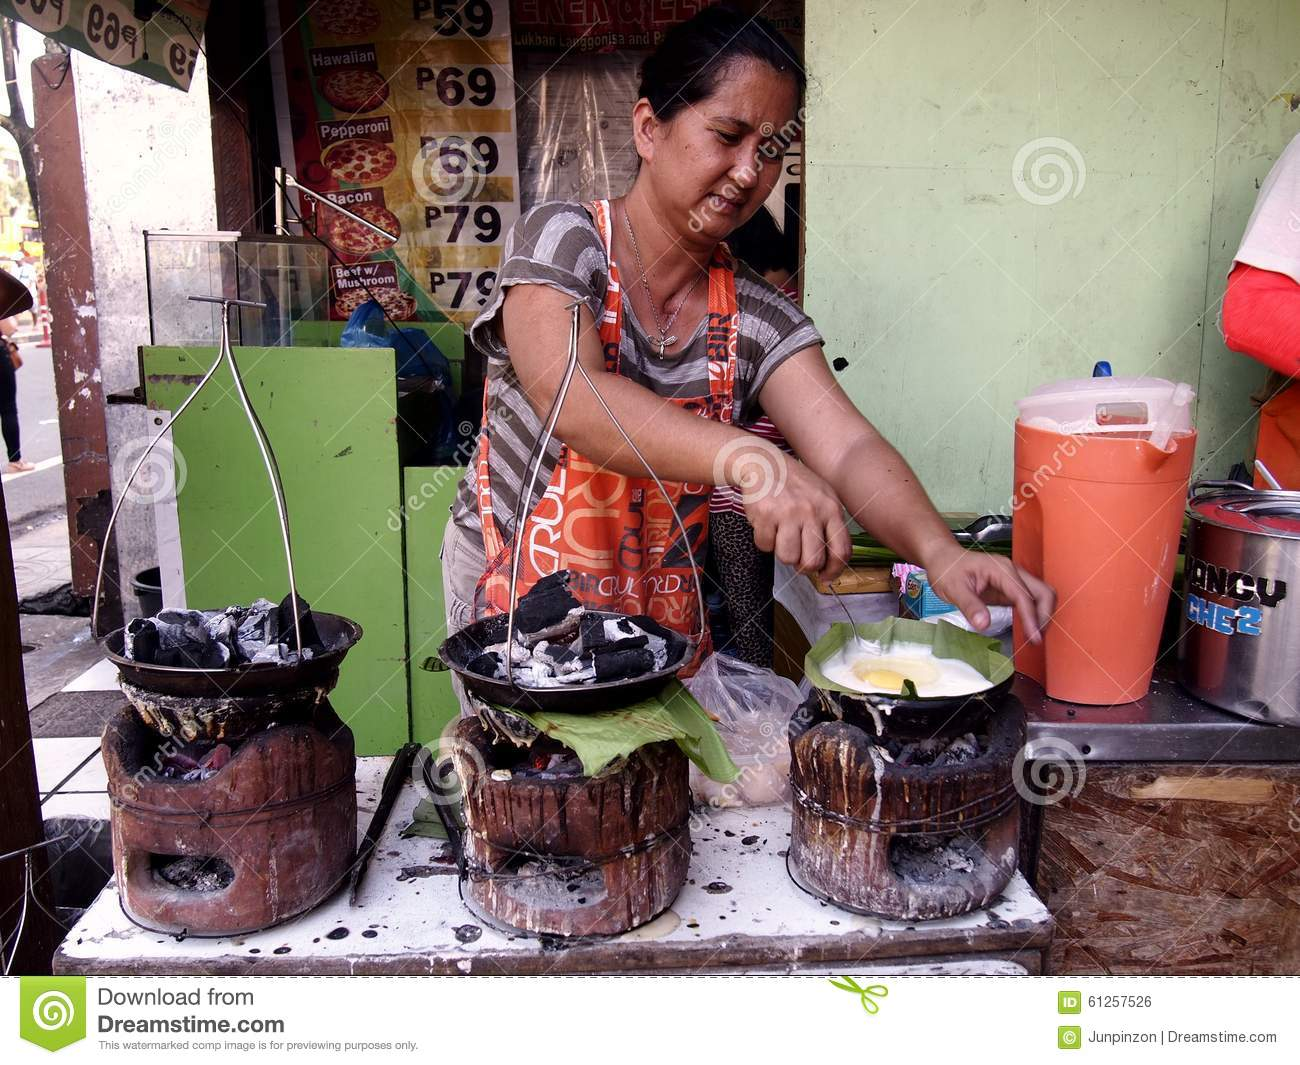 Rice, Pasta and Noodles in Indonesia